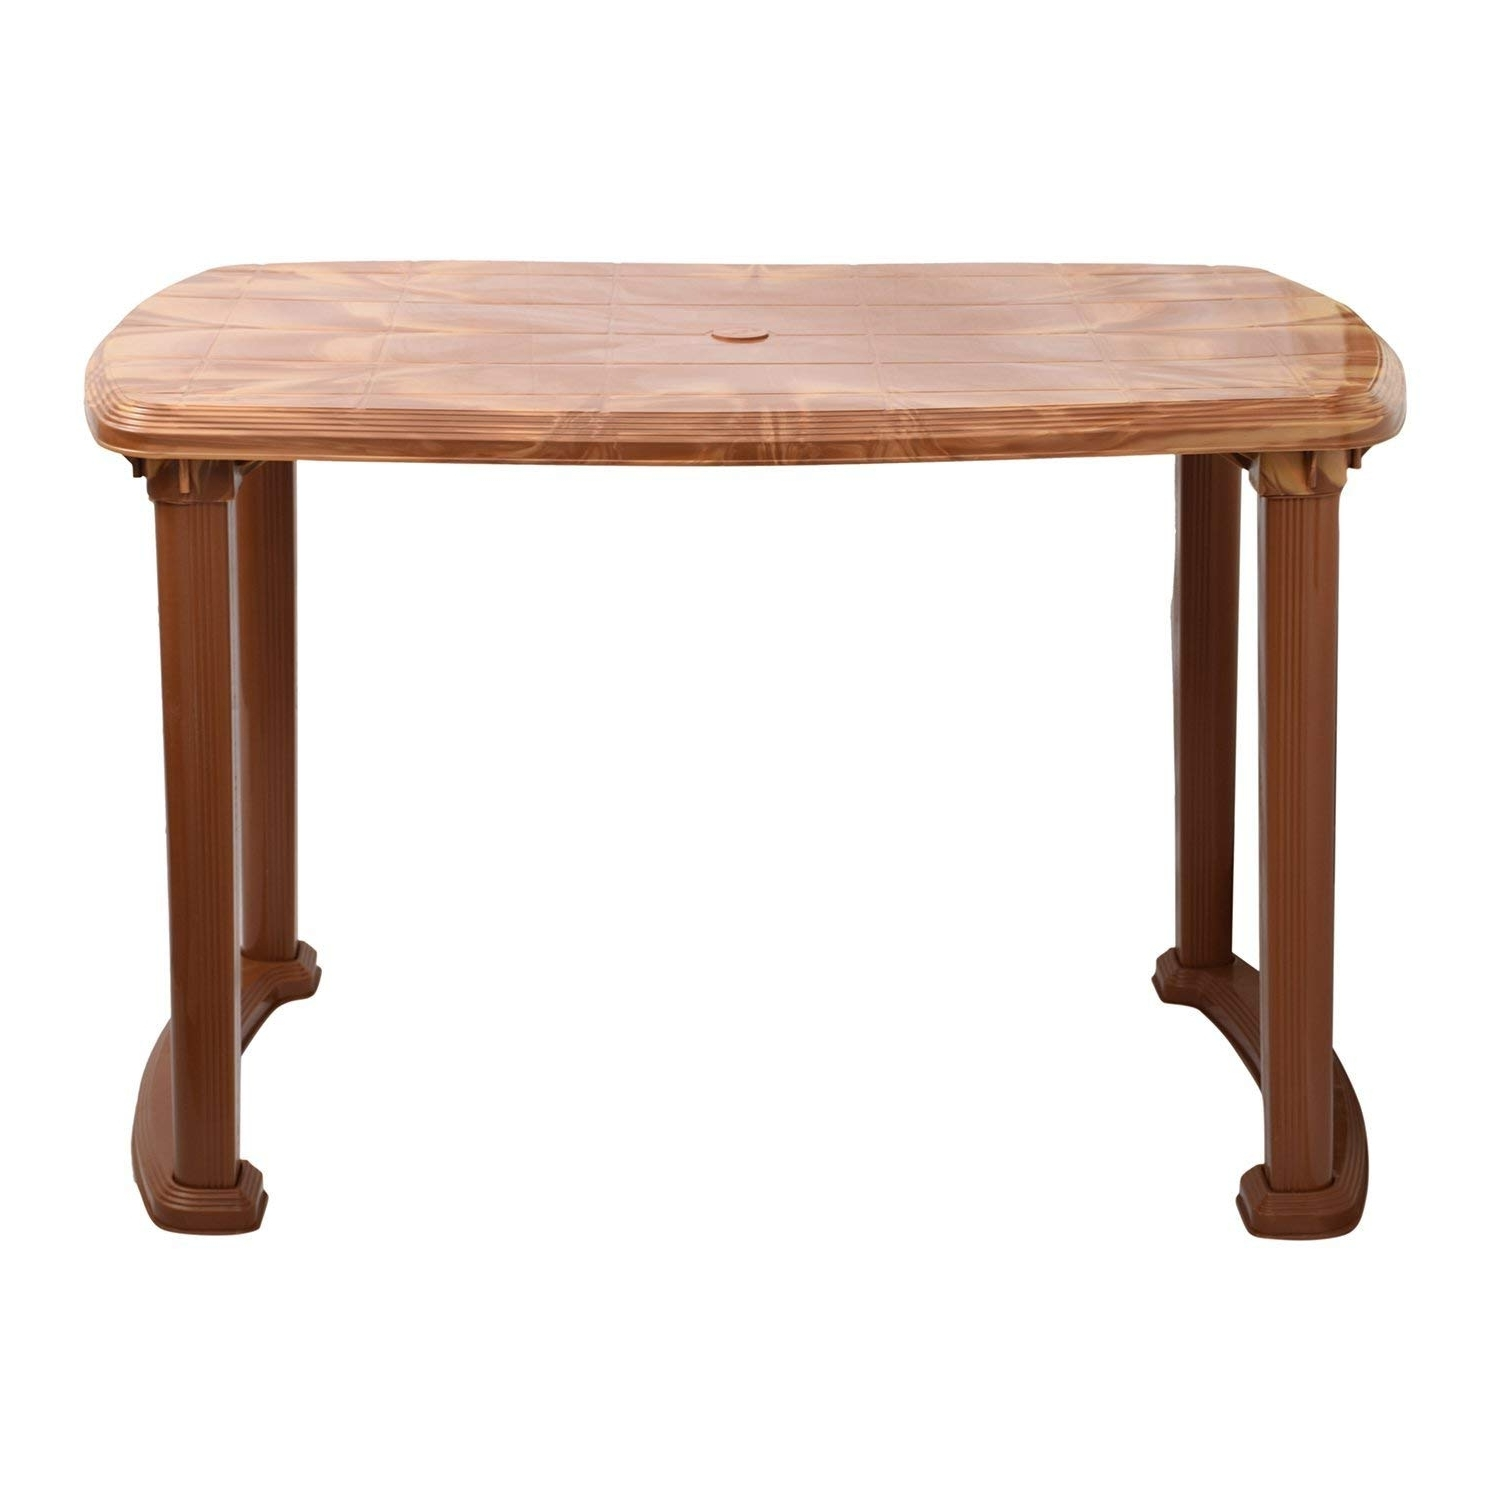 Circular Dining Tables For 4 With Current Dining Tables : Buy Dining Tables Online At Low Prices In India (View 6 of 25)